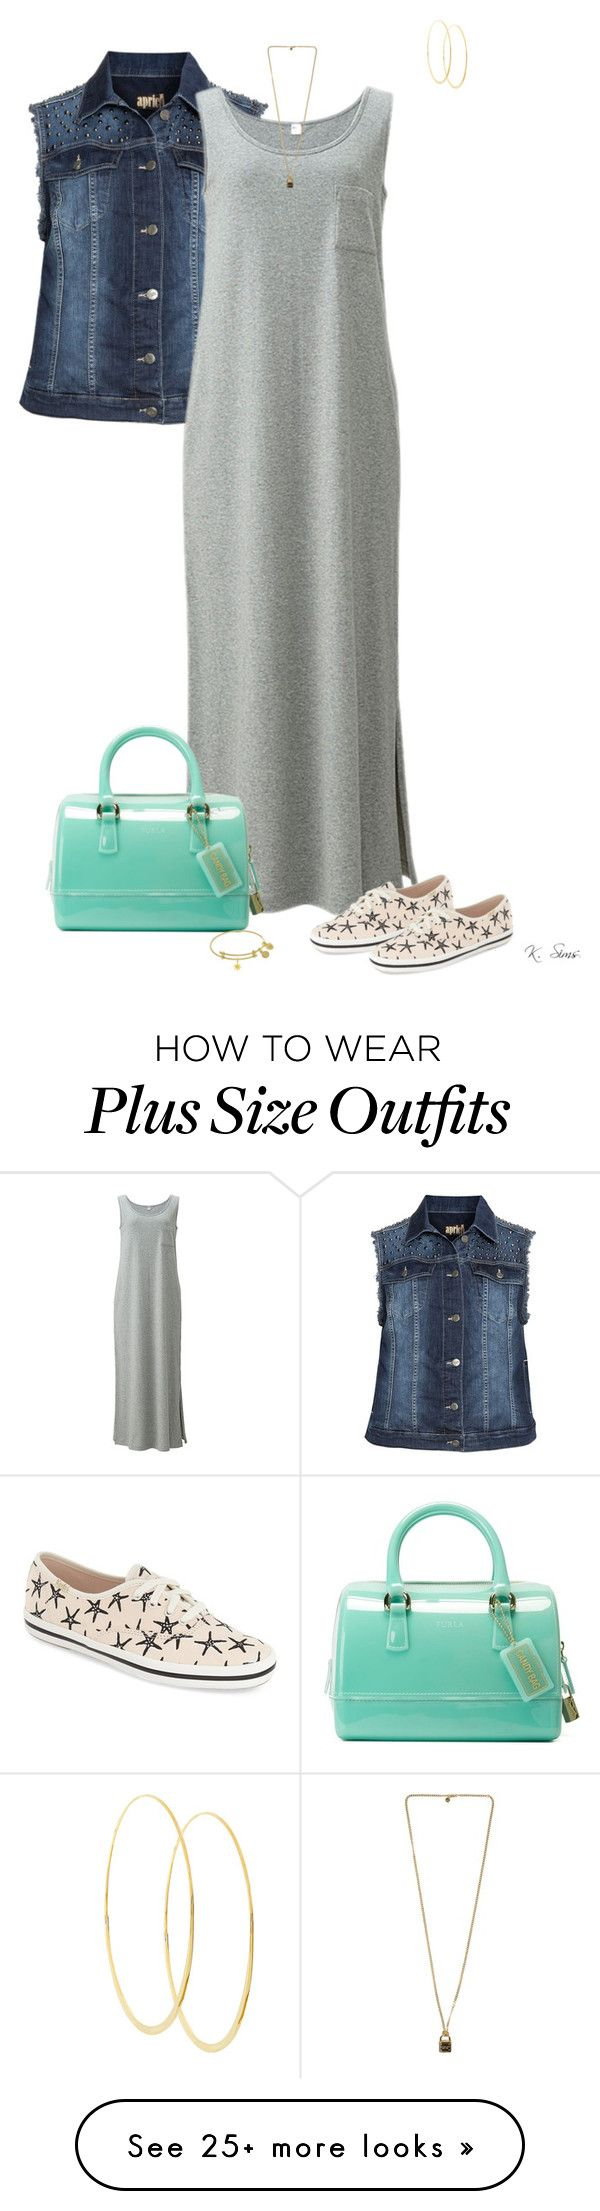 """Keds for the Summer"" by ksims-1 on Polyvore featuring aprico, Uniqlo, Kate Spade, Furla, Michael Kors and Lana"